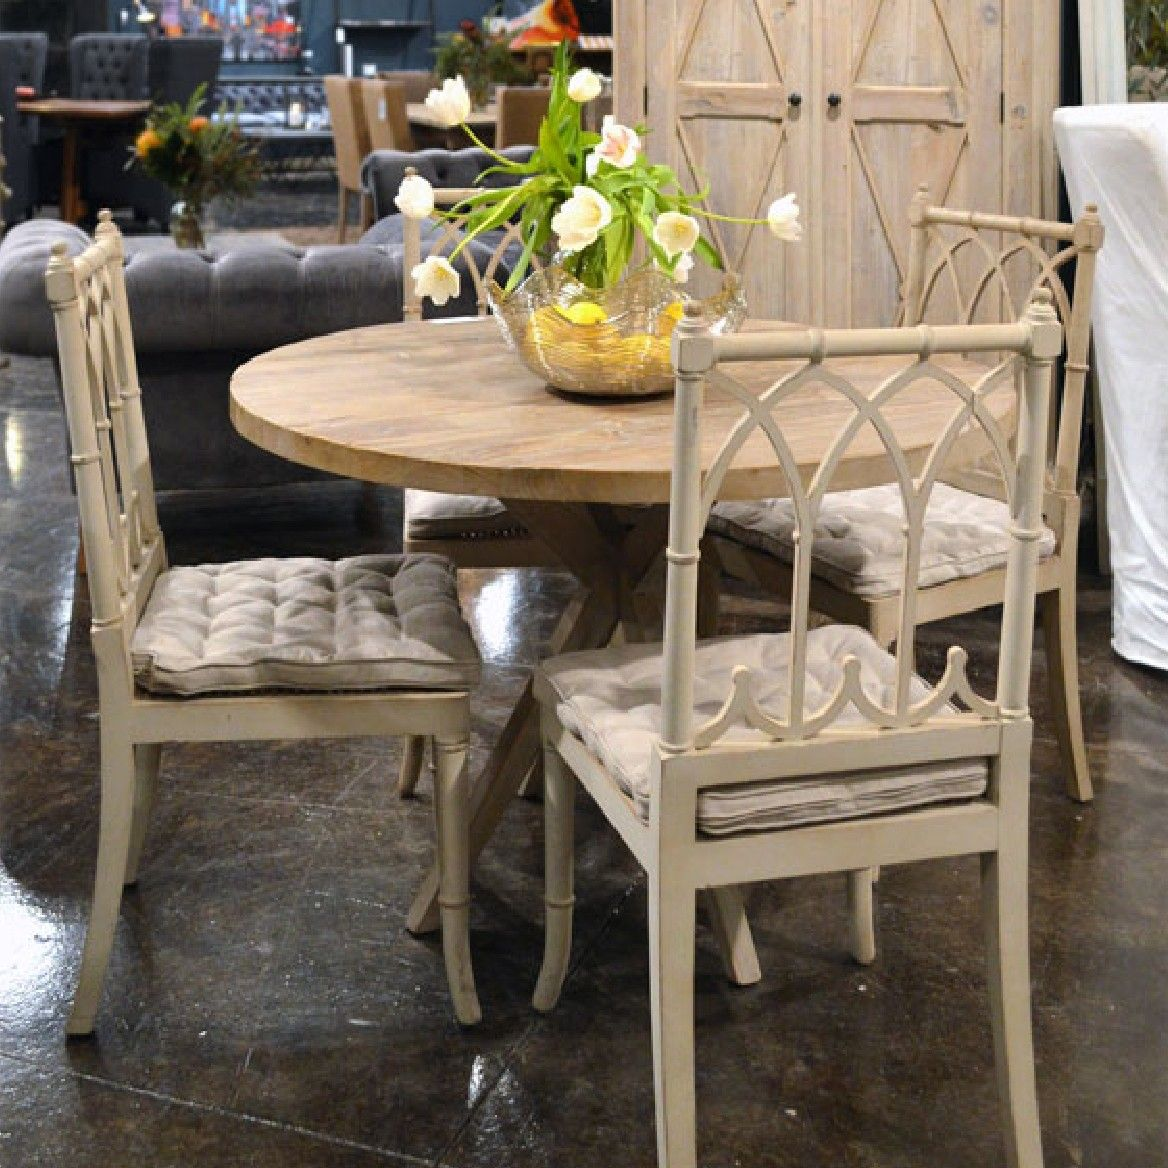 Jarvis Dining Chair Are Made Of Birch Wood Frame With Distressed Cream Paint